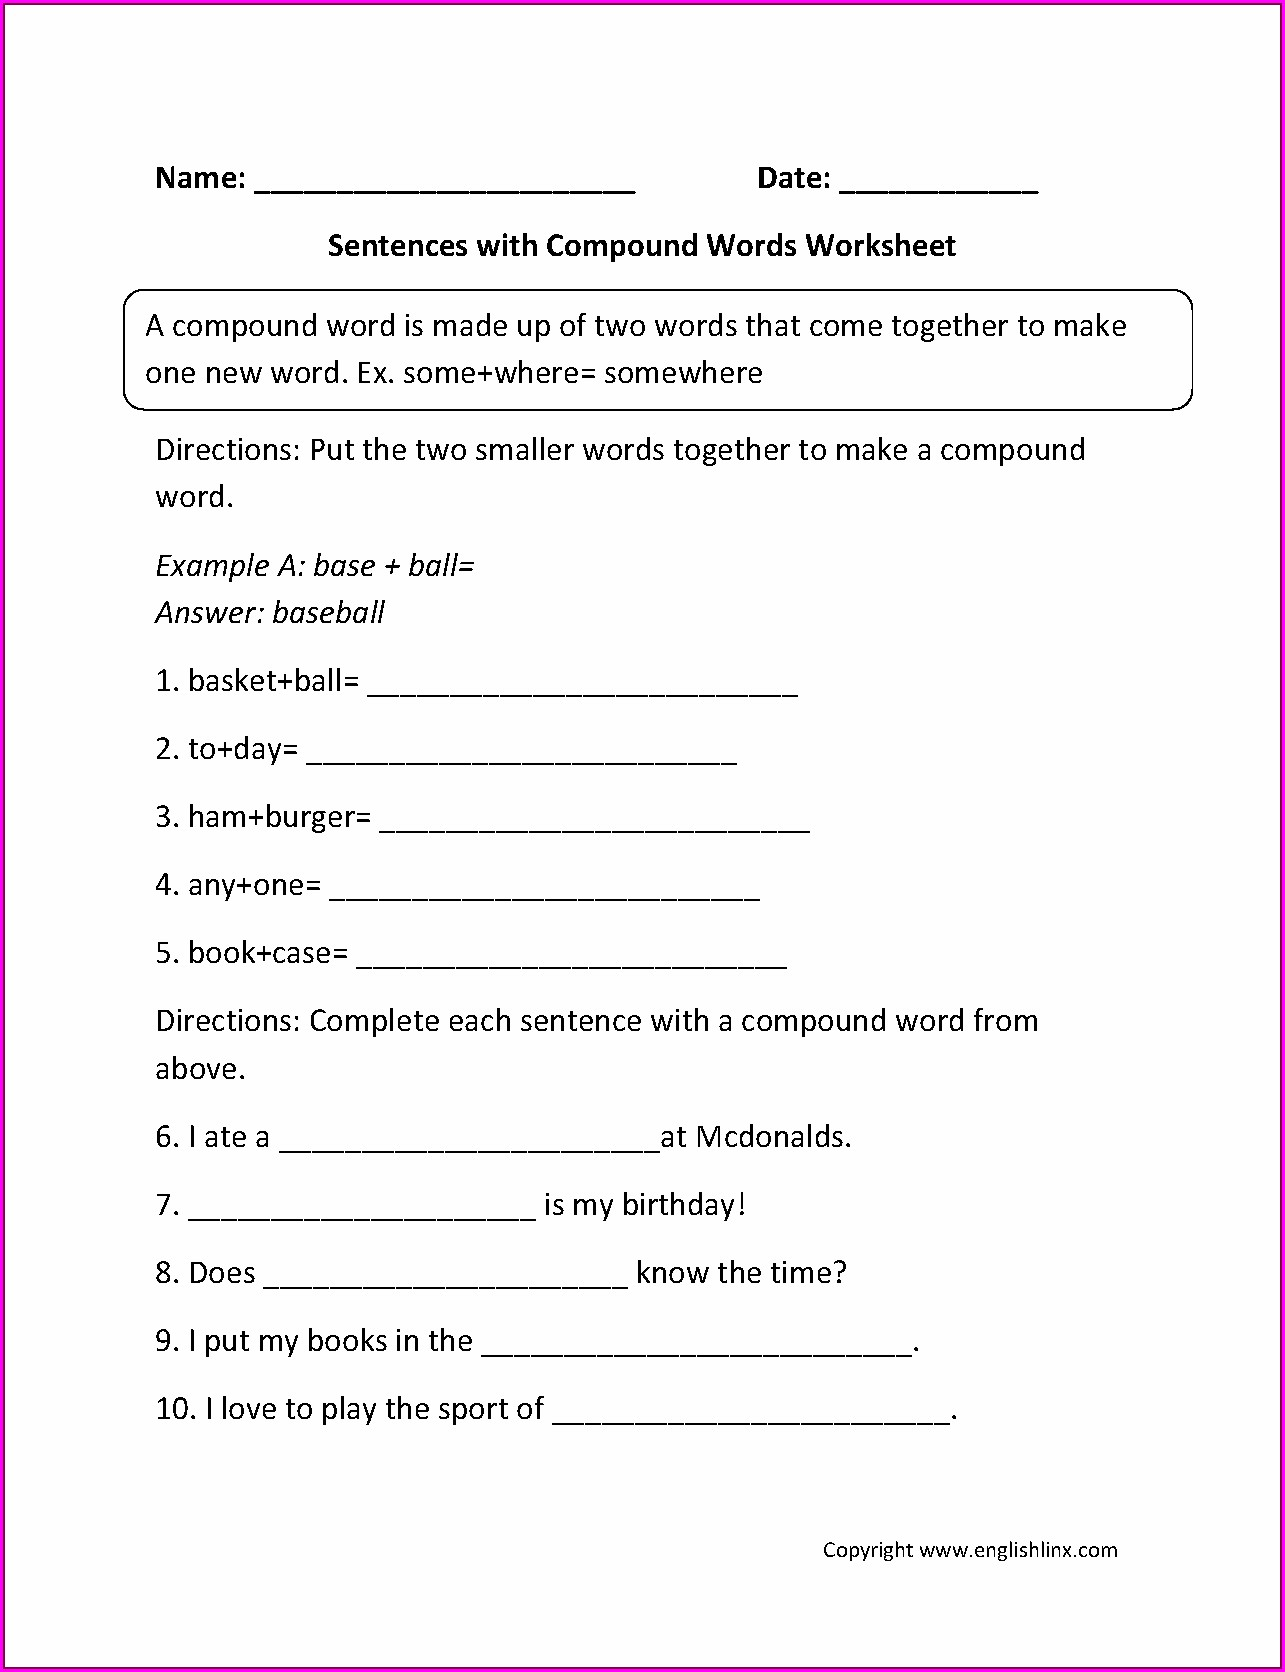 Compound Words Worksheet For Grade 4